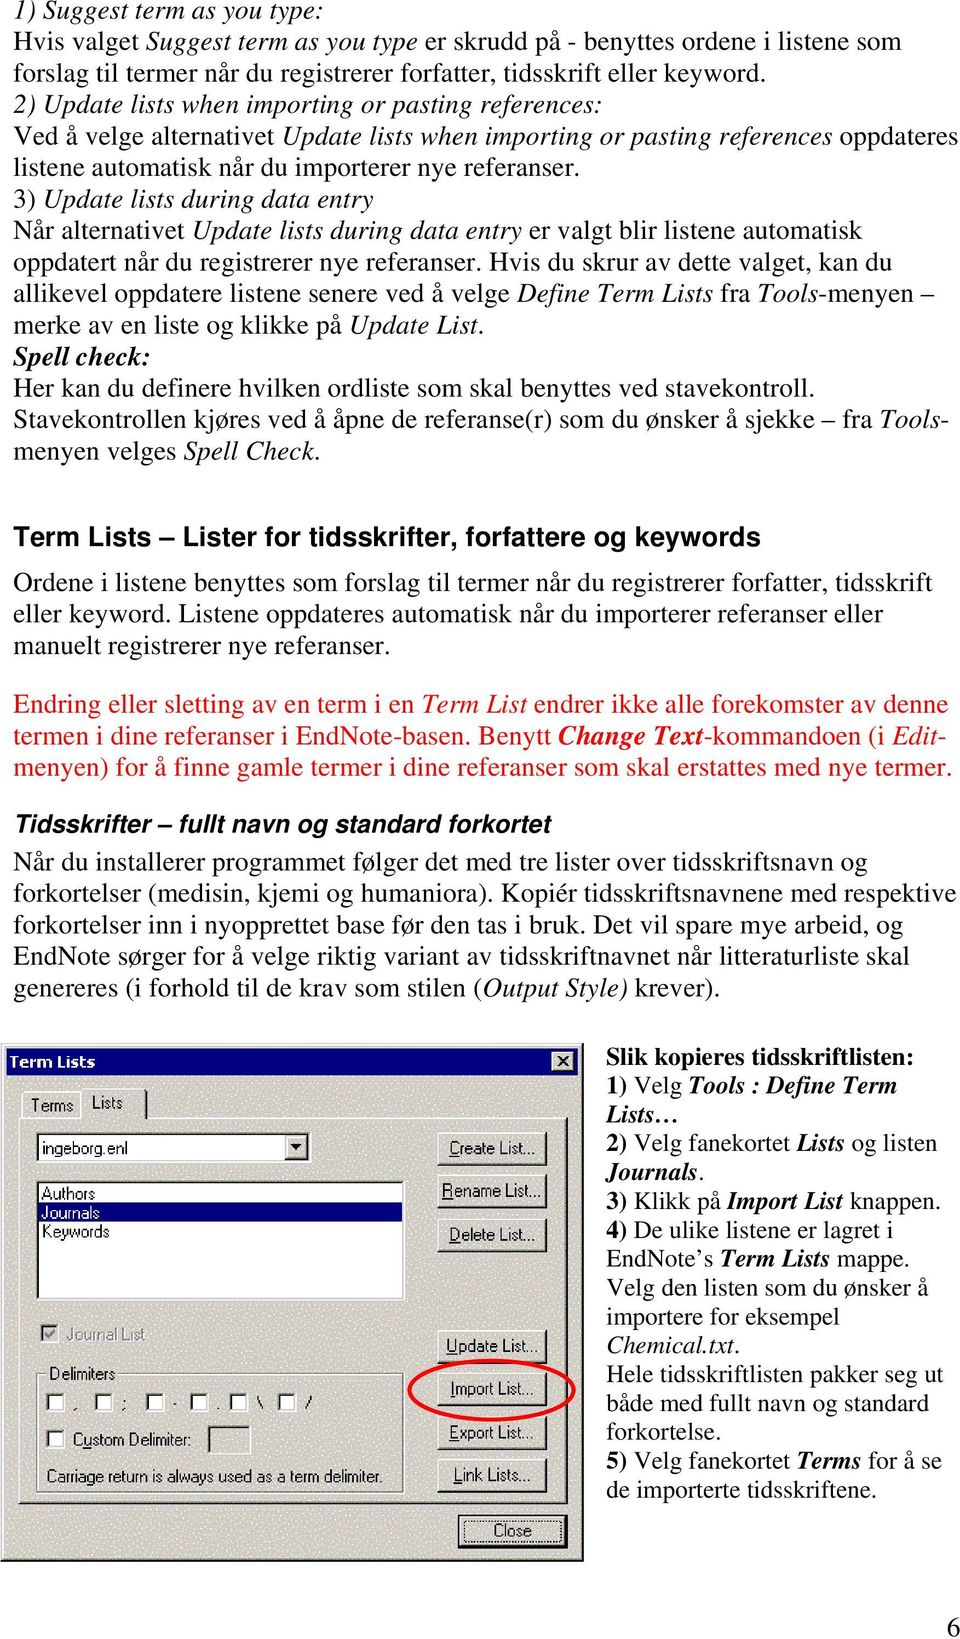 3) Update lists during data entry Når alternativet Update lists during data entry er valgt blir listene automatisk oppdatert når du registrerer nye referanser.